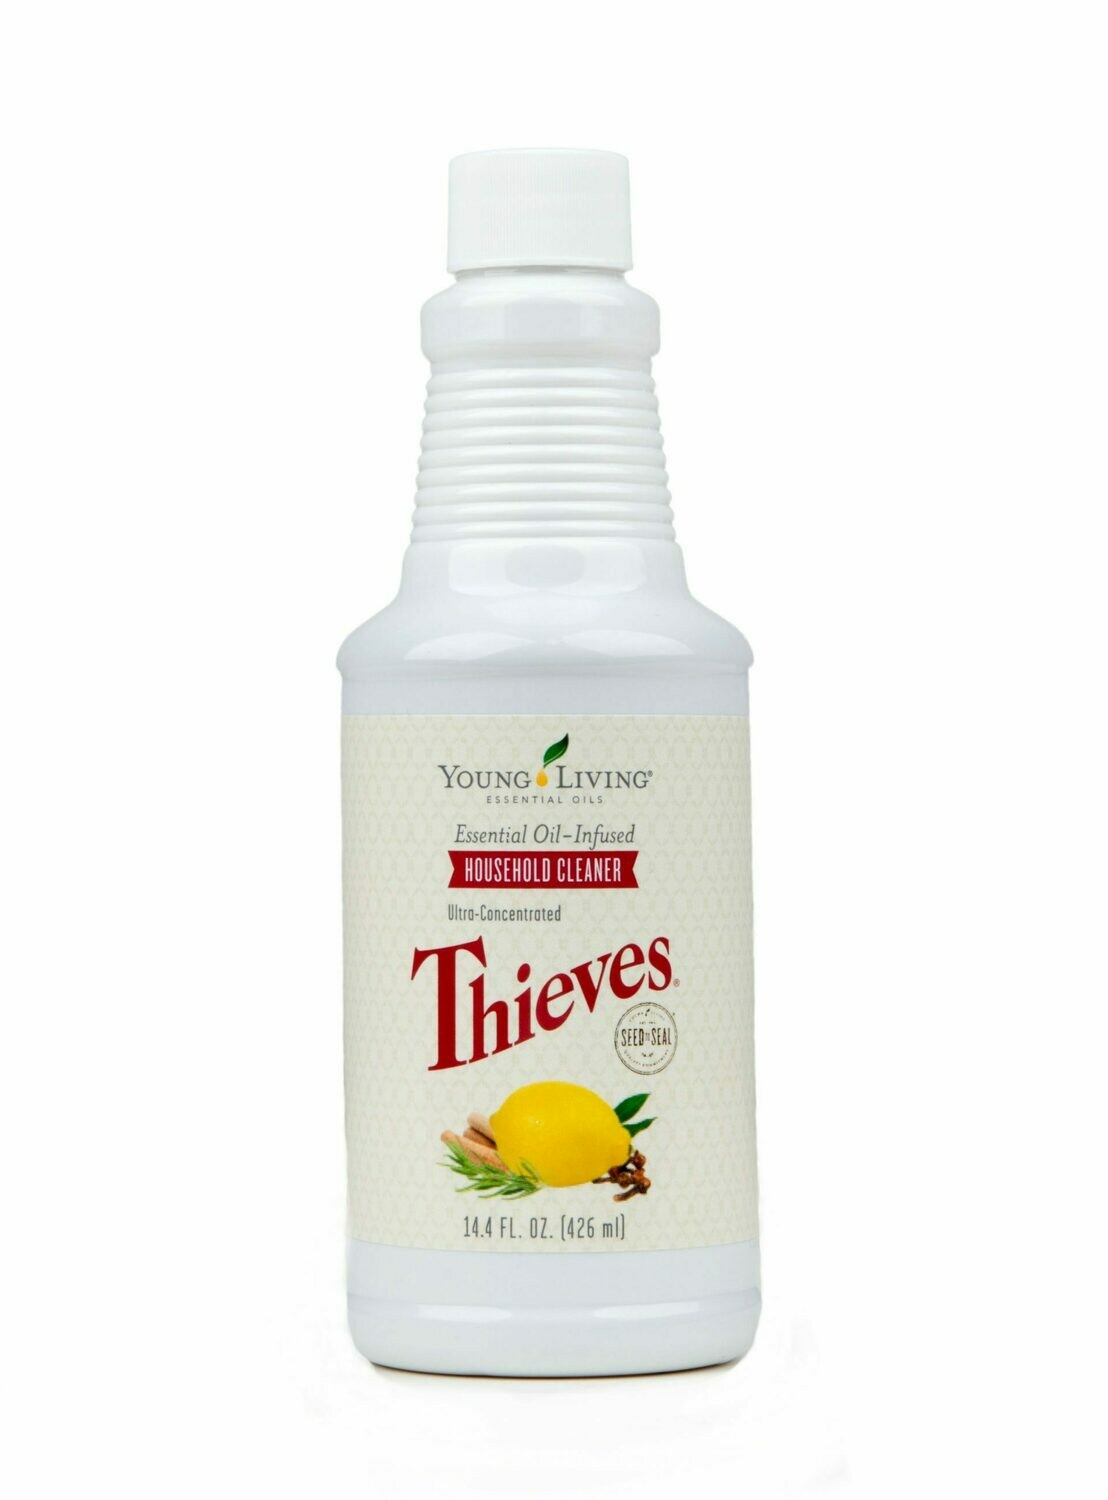 Thieves Household Cleaner Concentrate